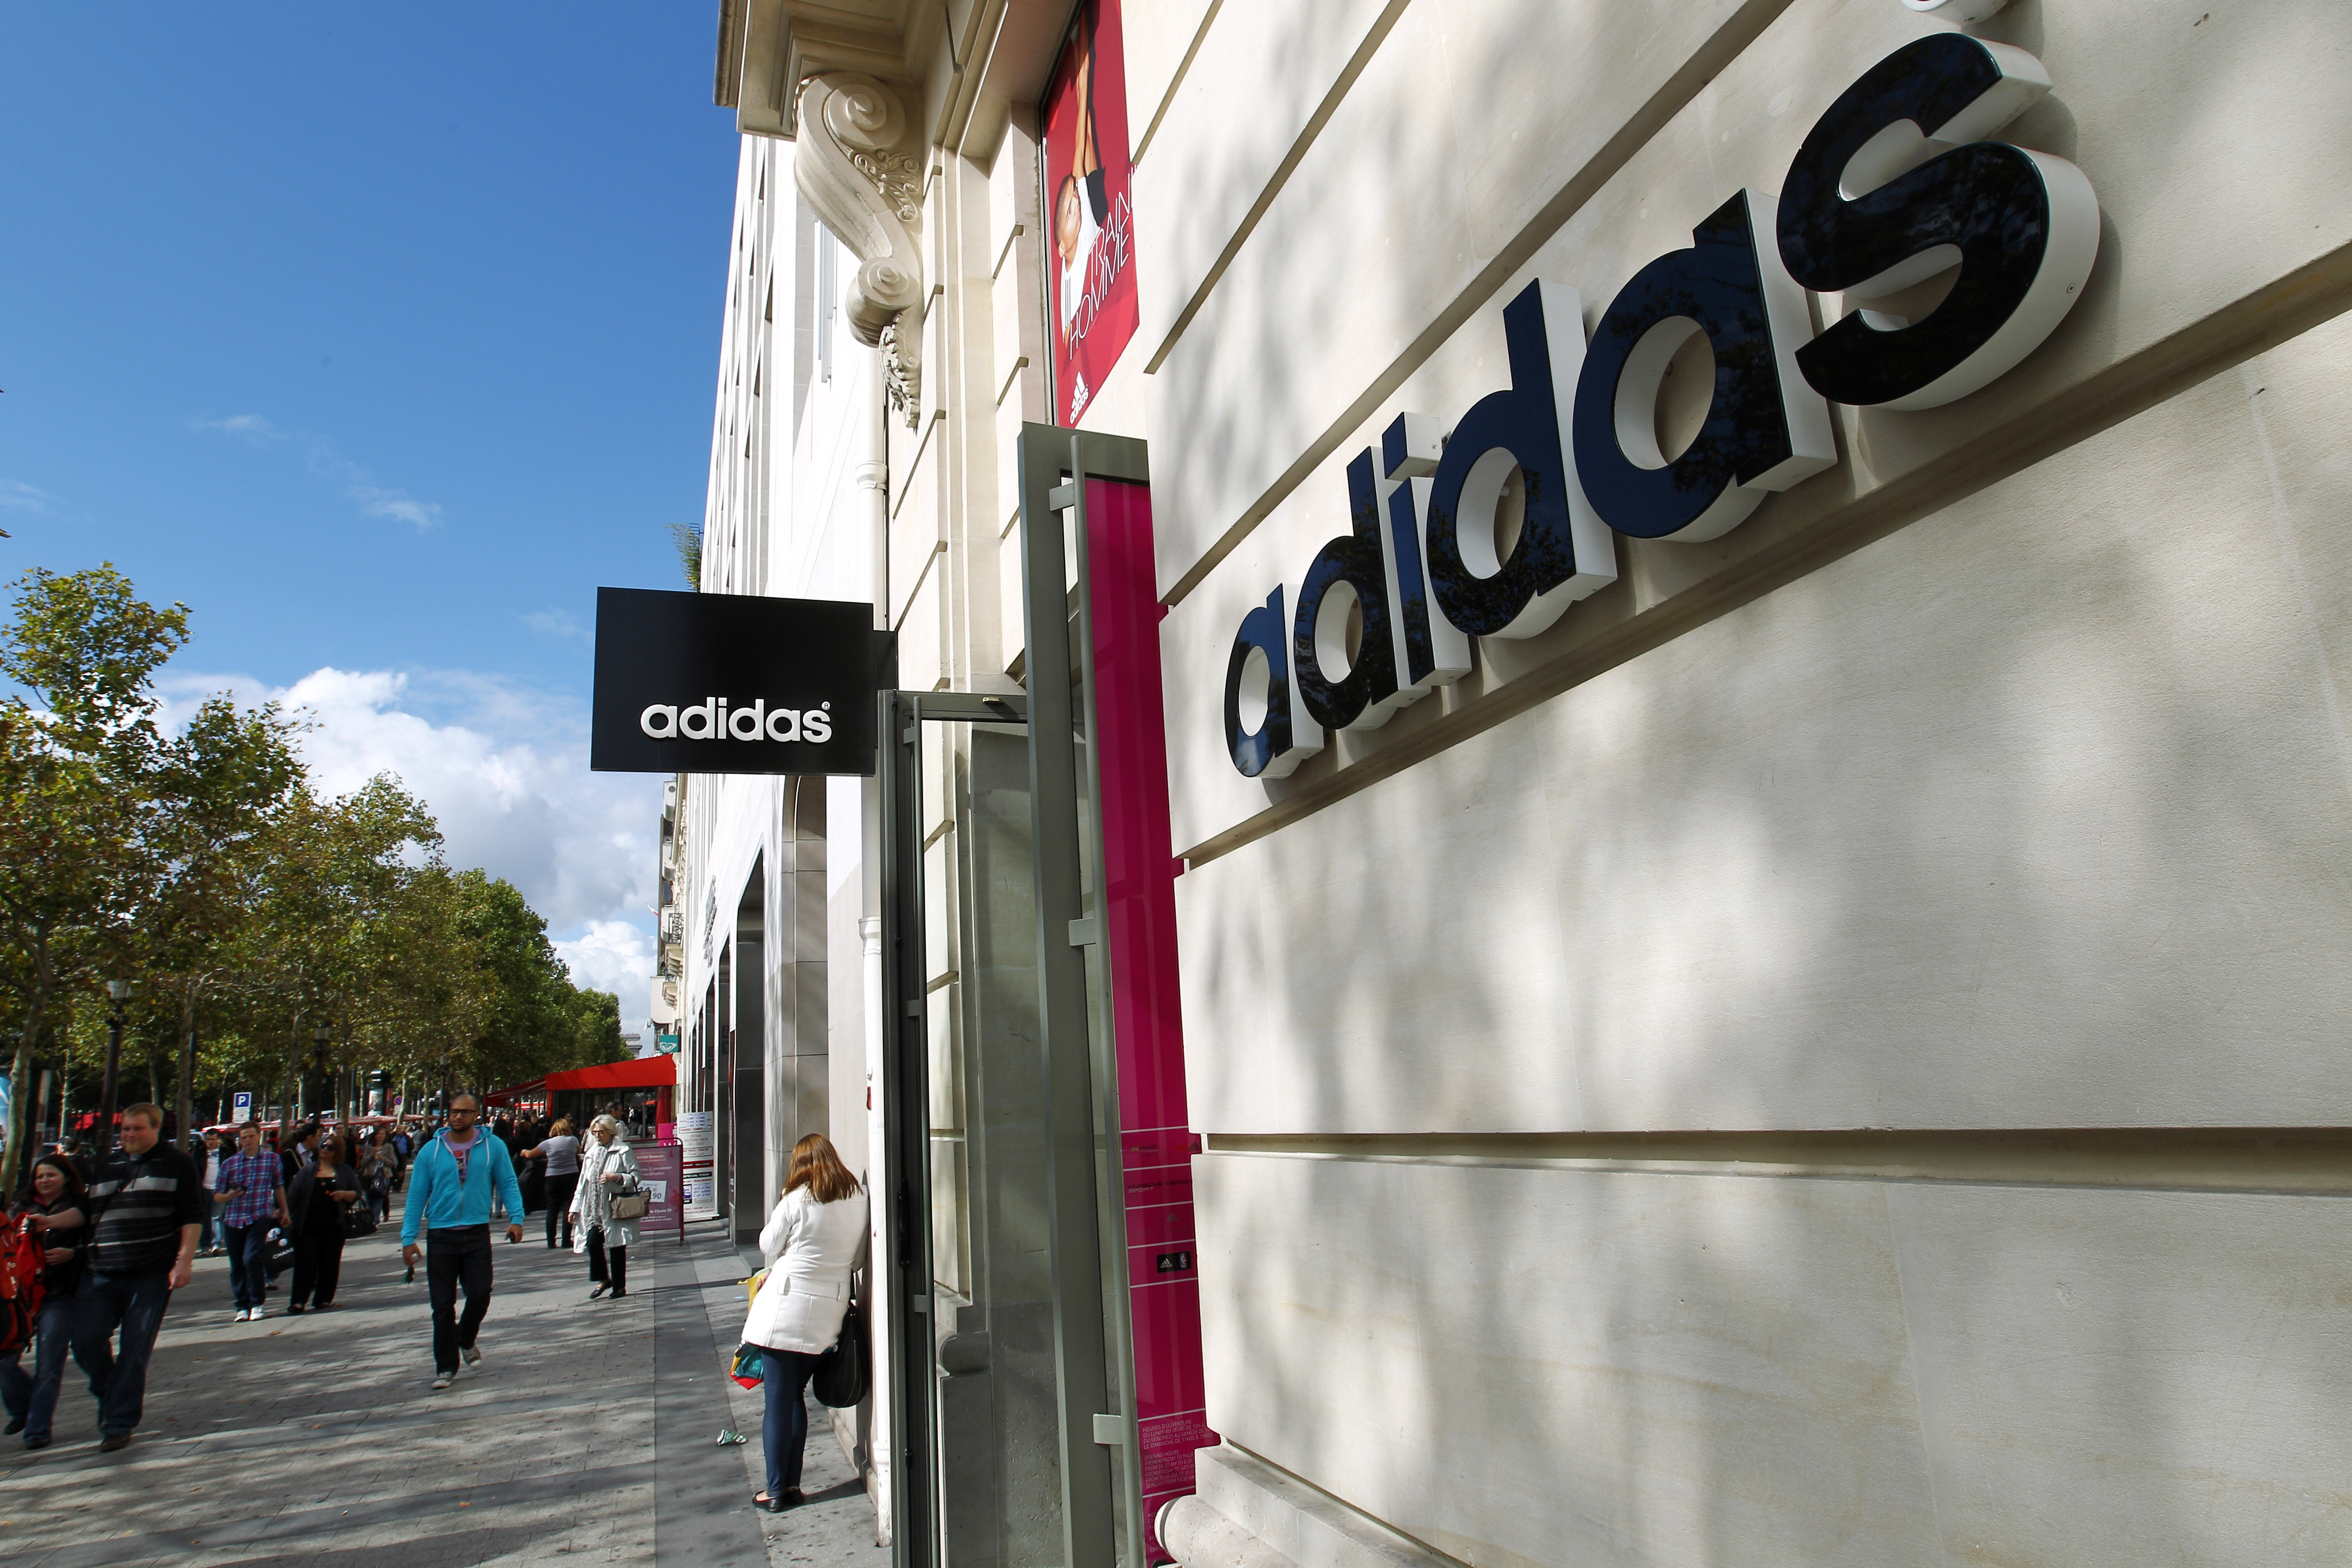 Si Solidaires Prochaines Baskets Adidas Vos Étaient Et 0wvNm8n